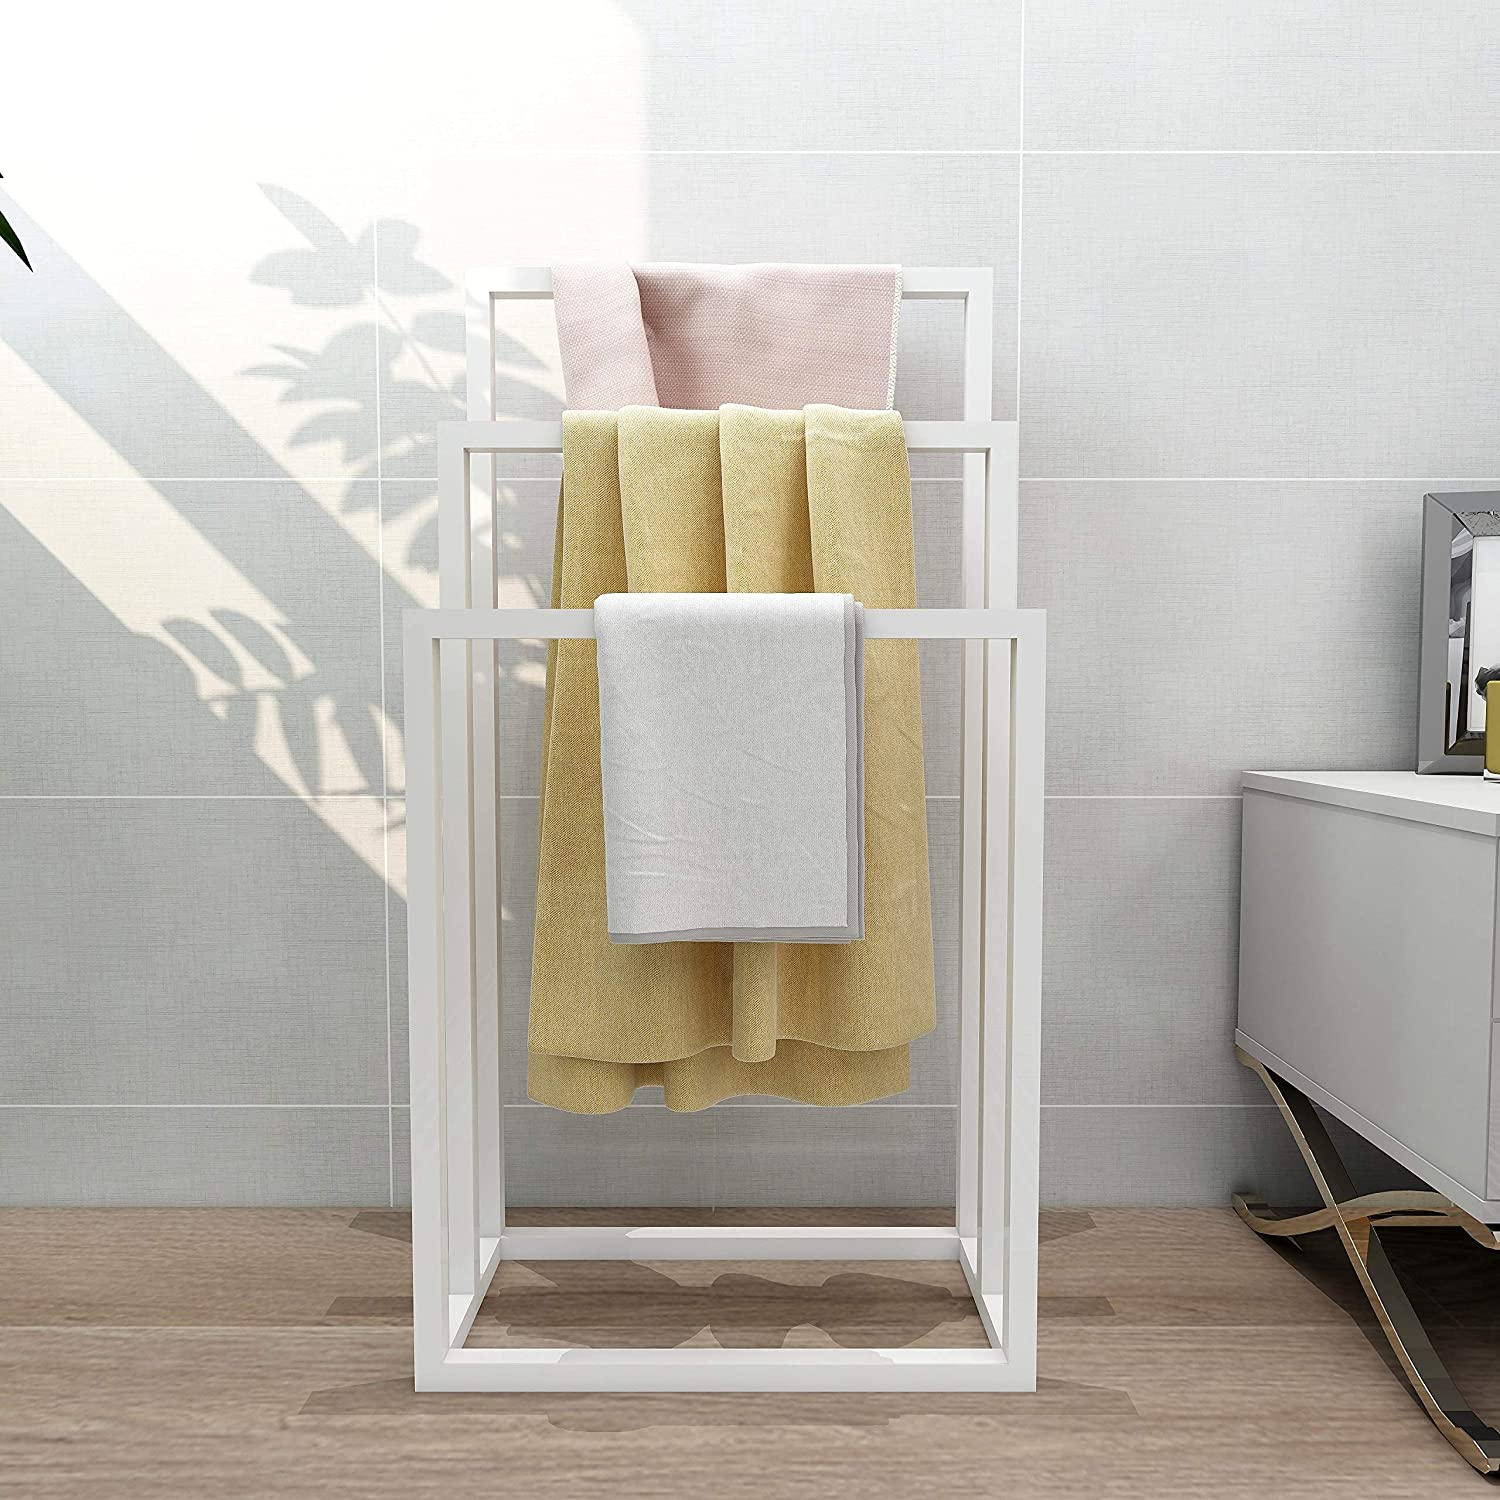 Direct stock discount Metal Freestanding Towel Rack 3 Holder H Year-end annual account Blanket Tires Organizer